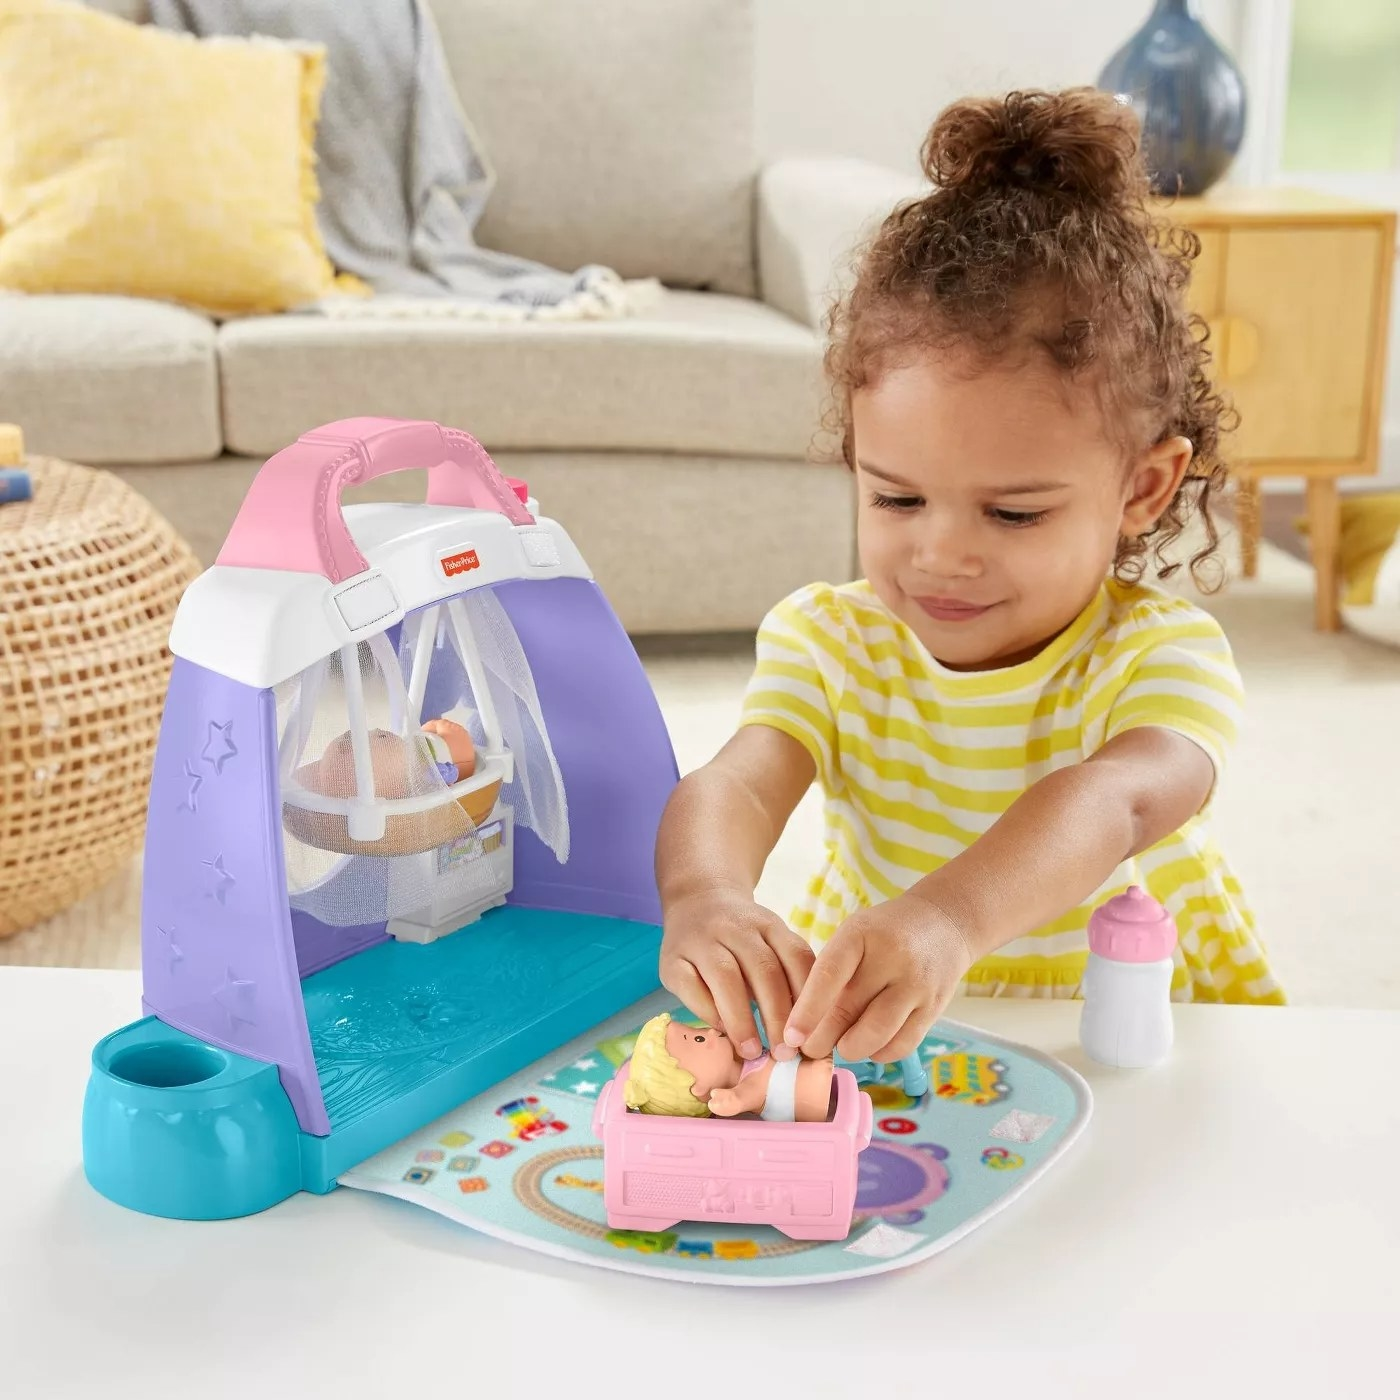 A child playing with one of the babies in the nursery playset